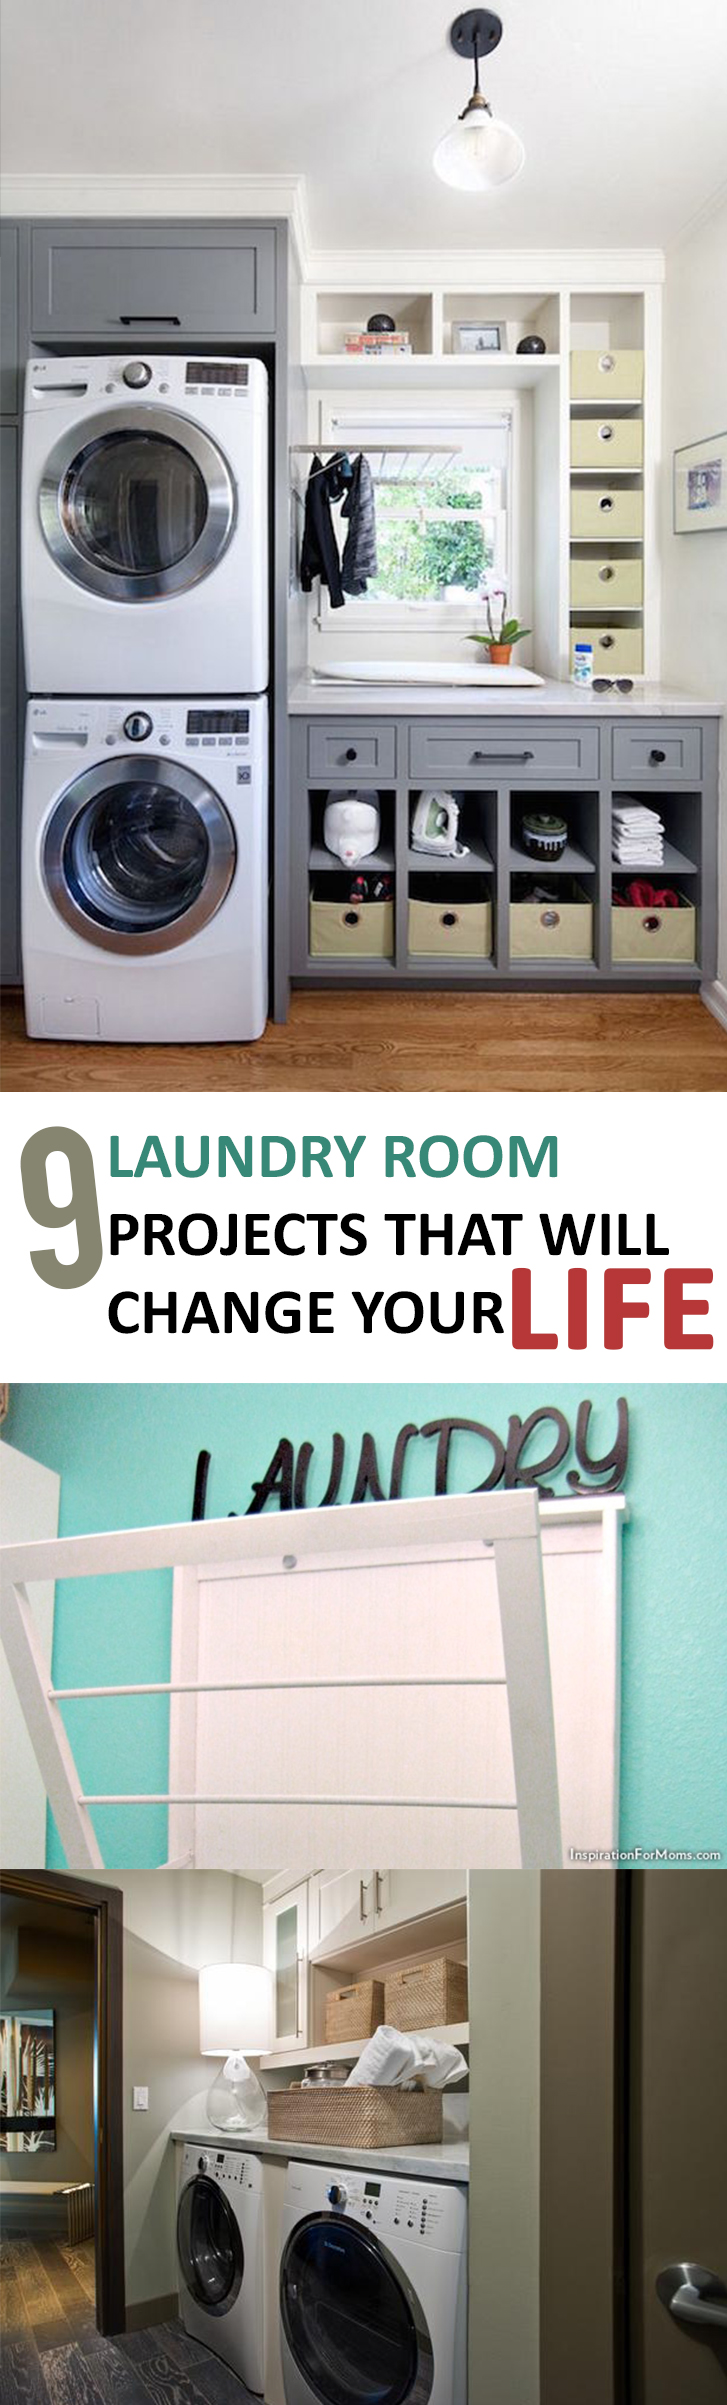 Laundry room projects, DIY laundry room organization, laundry room organization, easy laundry room organization, laundry room tips and tricks, easy storage. popular pin